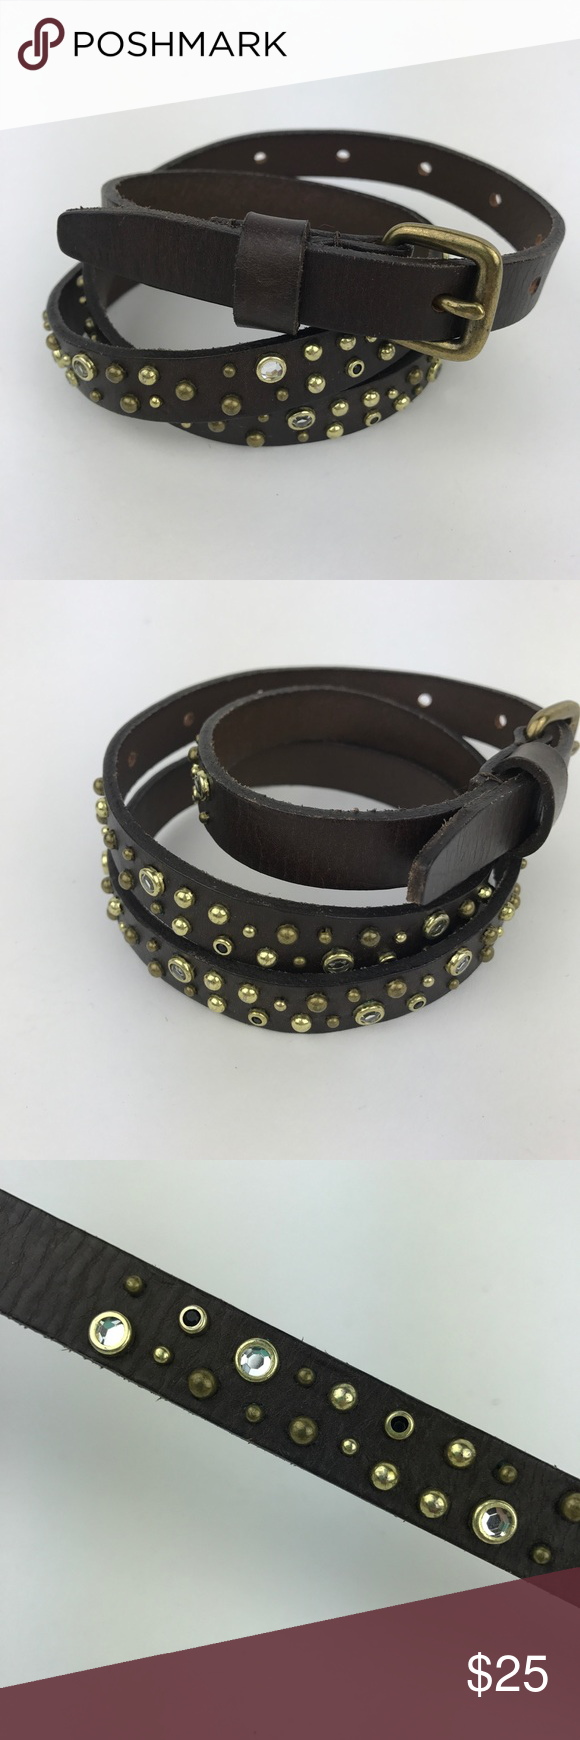 """[J Crew] Studded Crystal Leather Belt Brown Skinny Skinny genuine leather belt. Crystal and stud detailing. Size Small.  🔹Total Length: 35"""" 🔹Shortest Hole: 26"""" 🔹Longest Hole: 32"""" 🔹Width: 0.5"""" 🔹Condition: Excellent pre-owned condition. J. Crew Accessories Belts"""